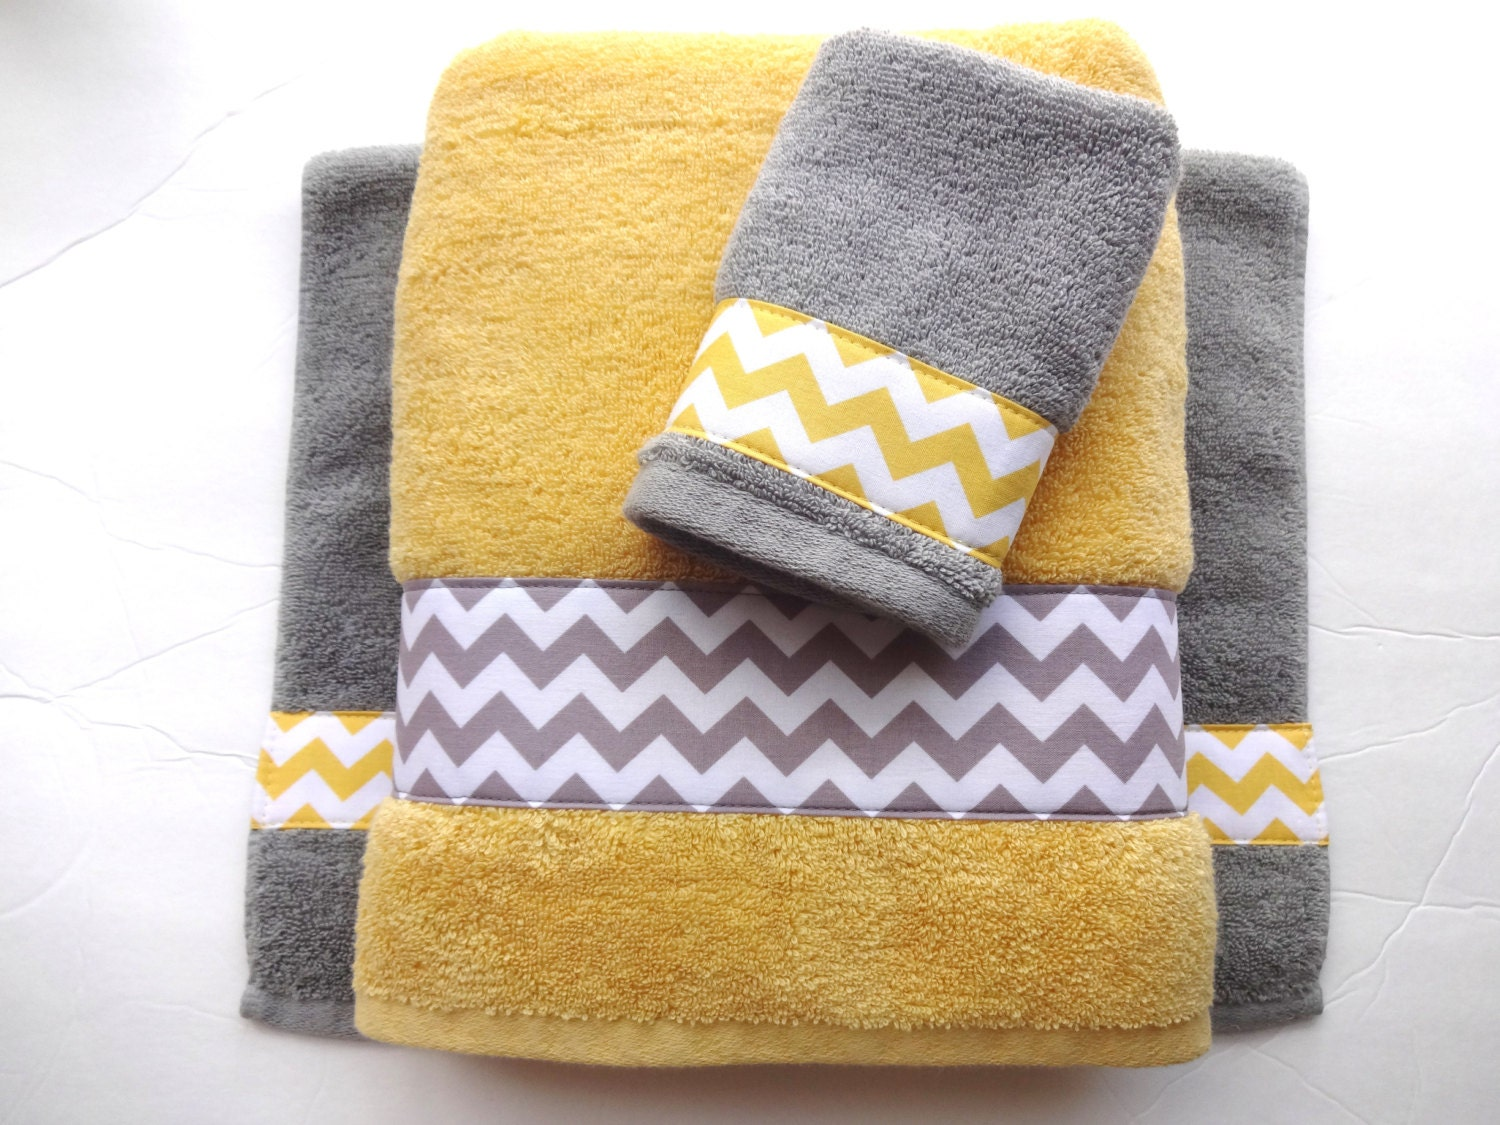 Phenomenal Pick Your Size Towel Yellow And Grey Towels Gray And Yellow Bathroom Towel Sets Hand Towels Yellow And Grey Bathroom Bath Decor Download Free Architecture Designs Estepponolmadebymaigaardcom